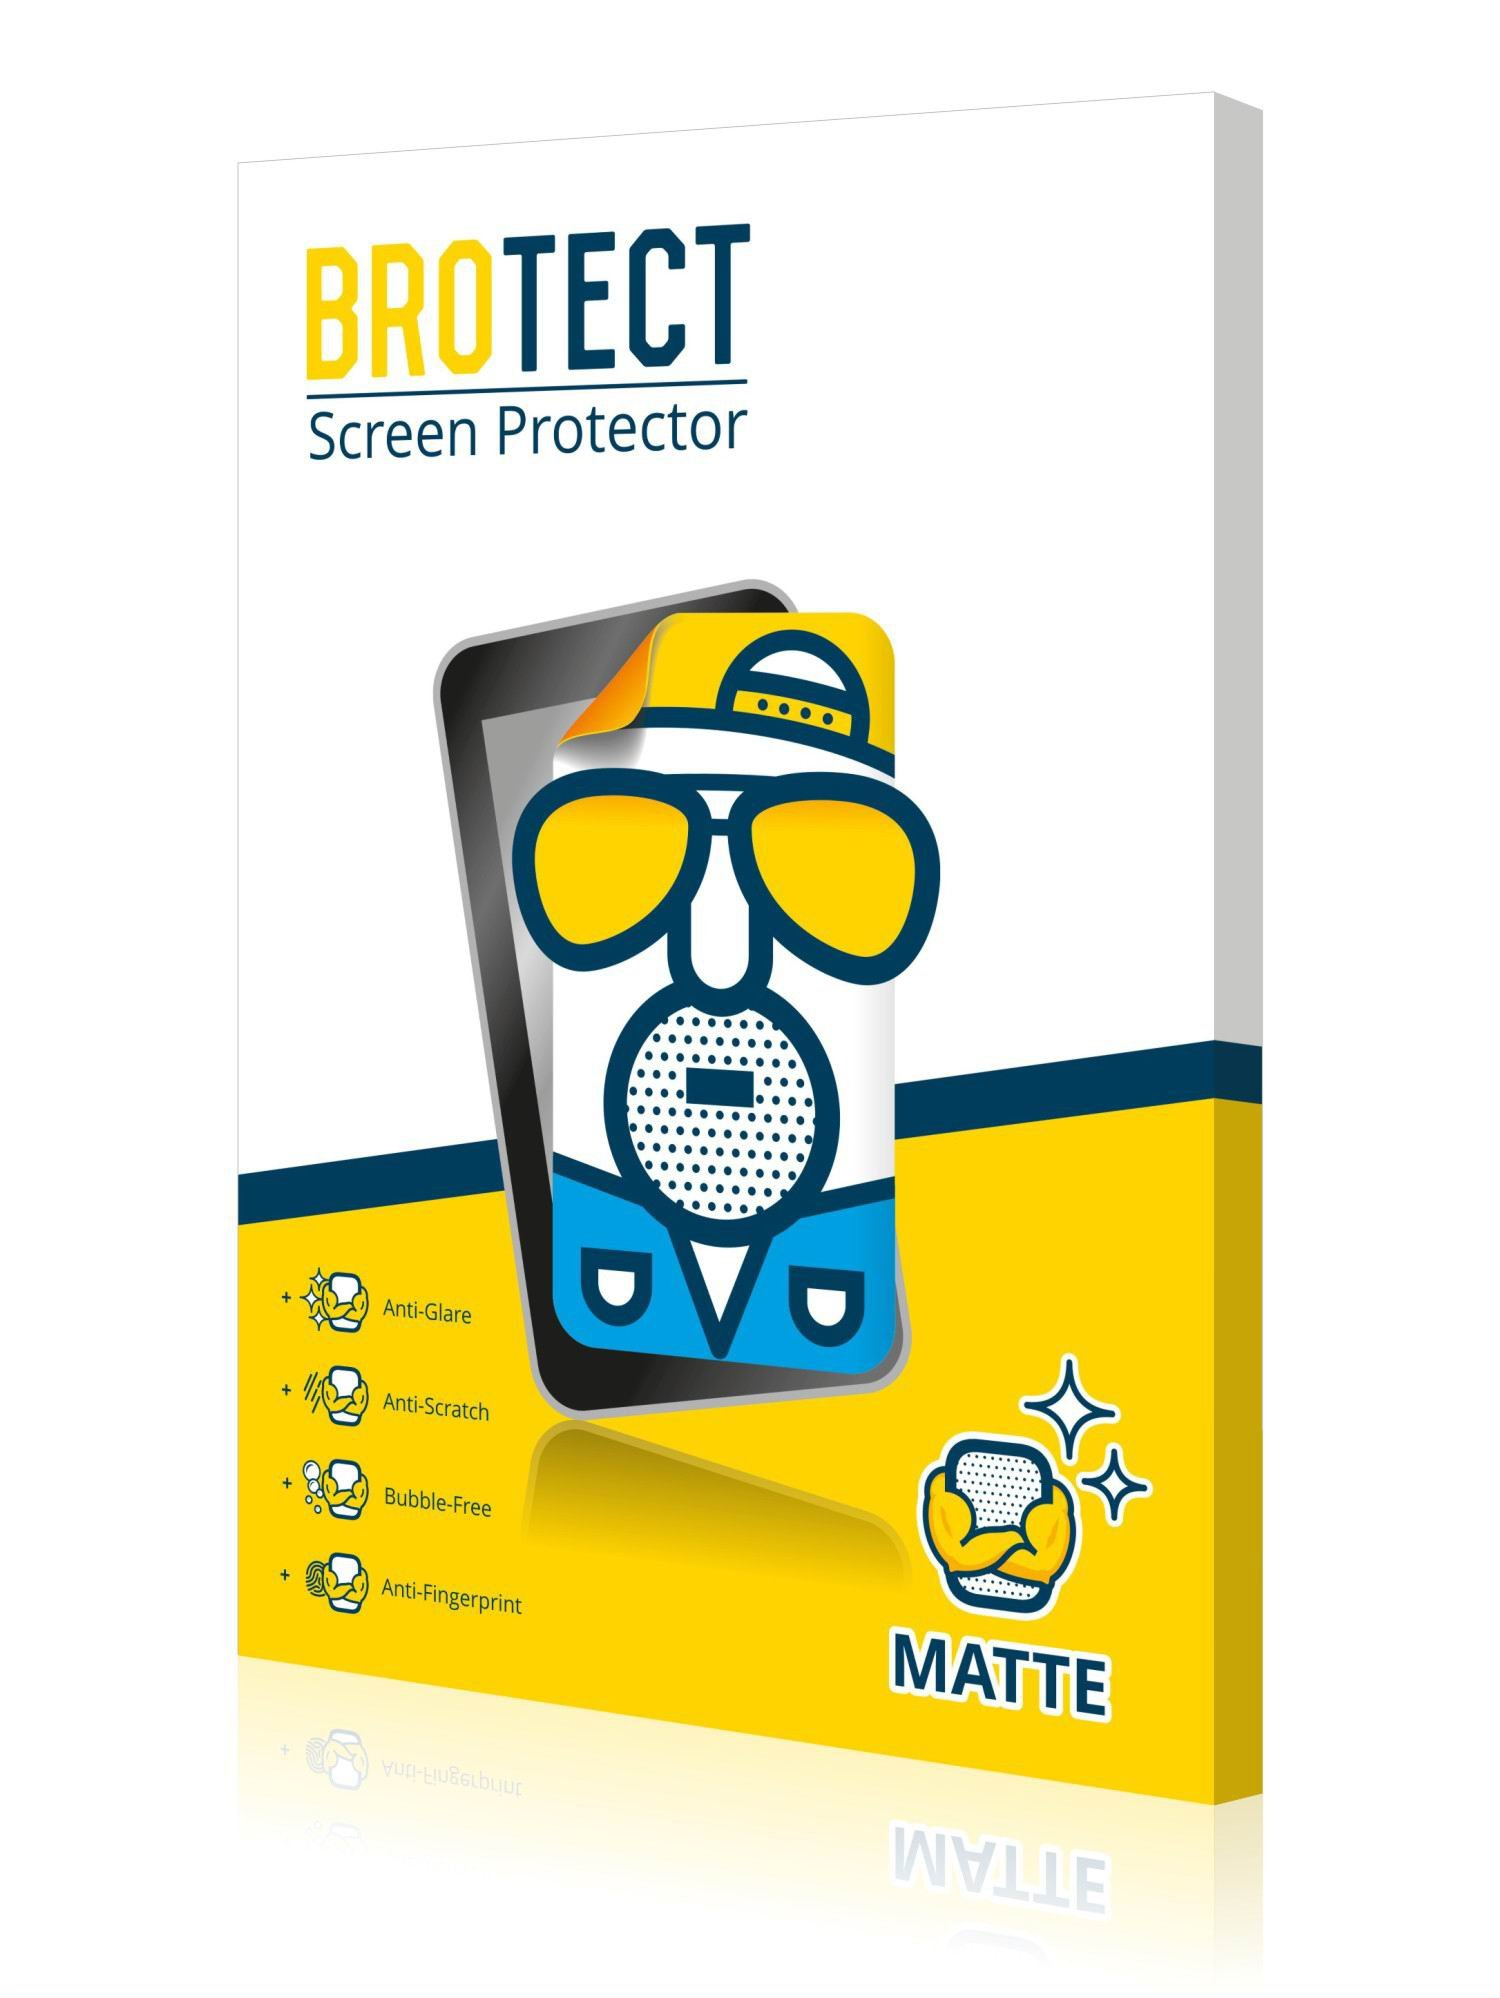 2x BROTECT Matte Screen Protector for Peugeot Connect Media Navigation NG4 3-D Traveller, Matte, Anti-Glare, Anti-Scratch